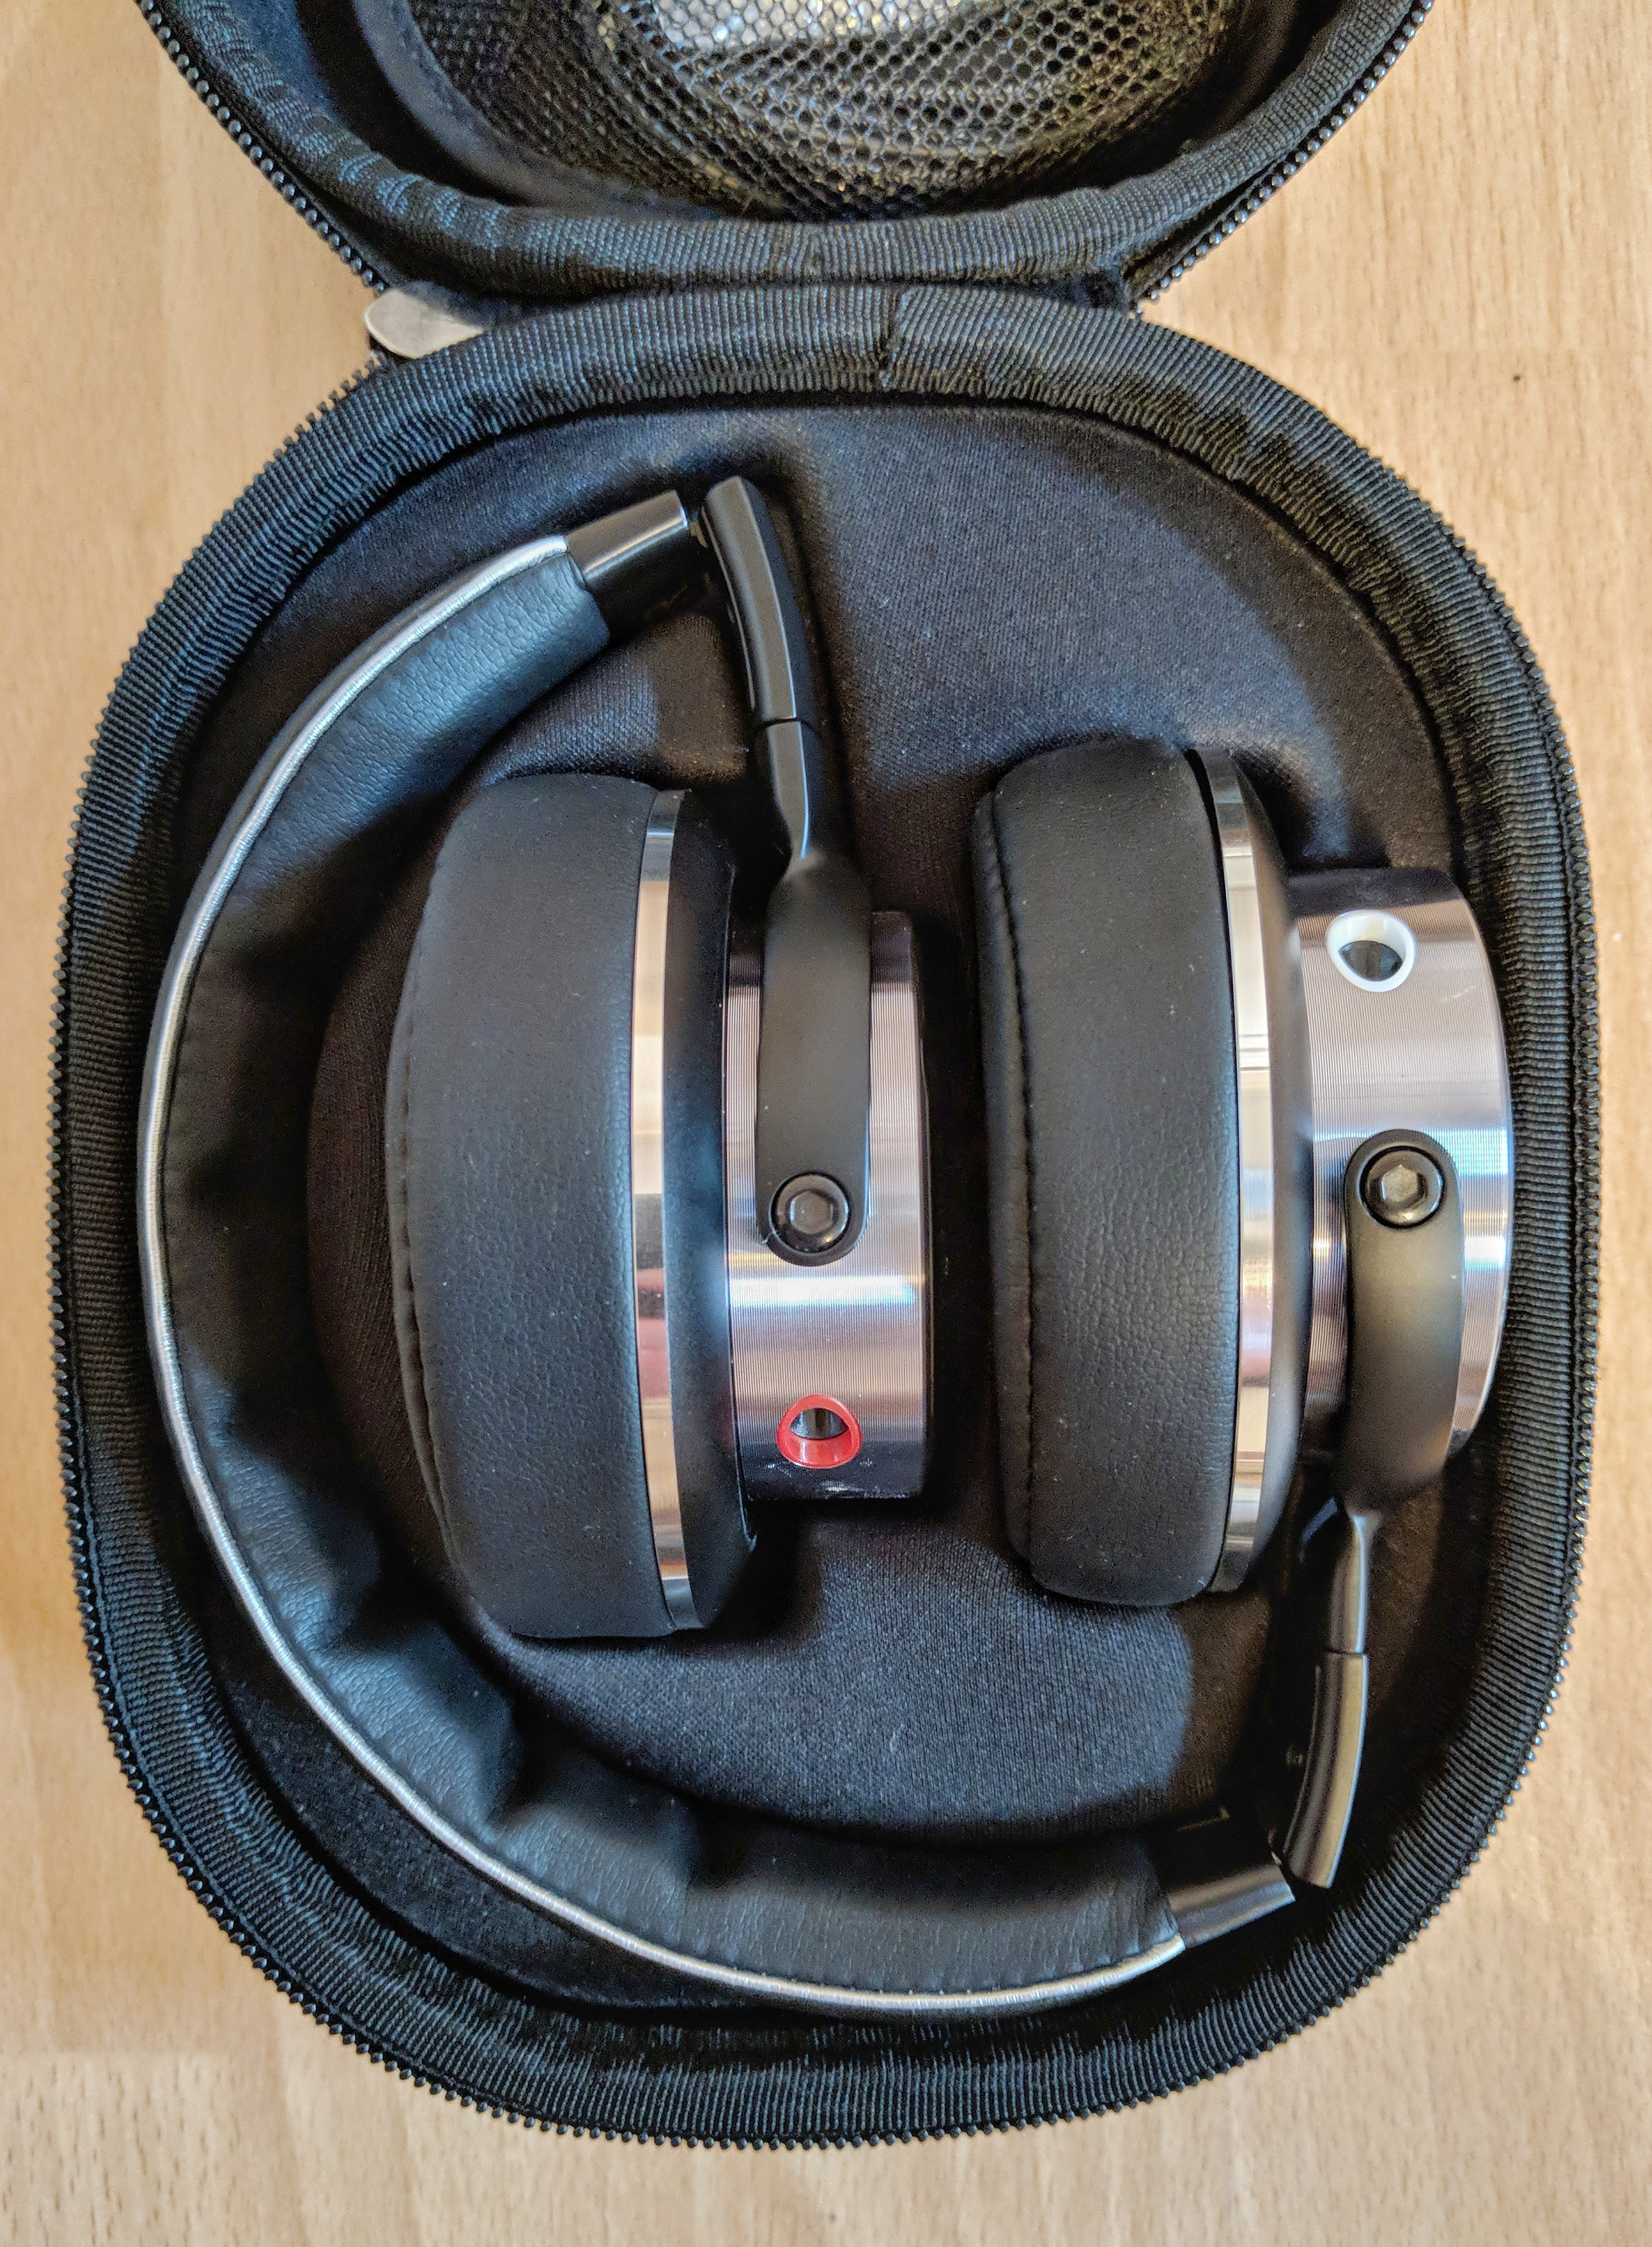 1more triple driver over ear headphones  case